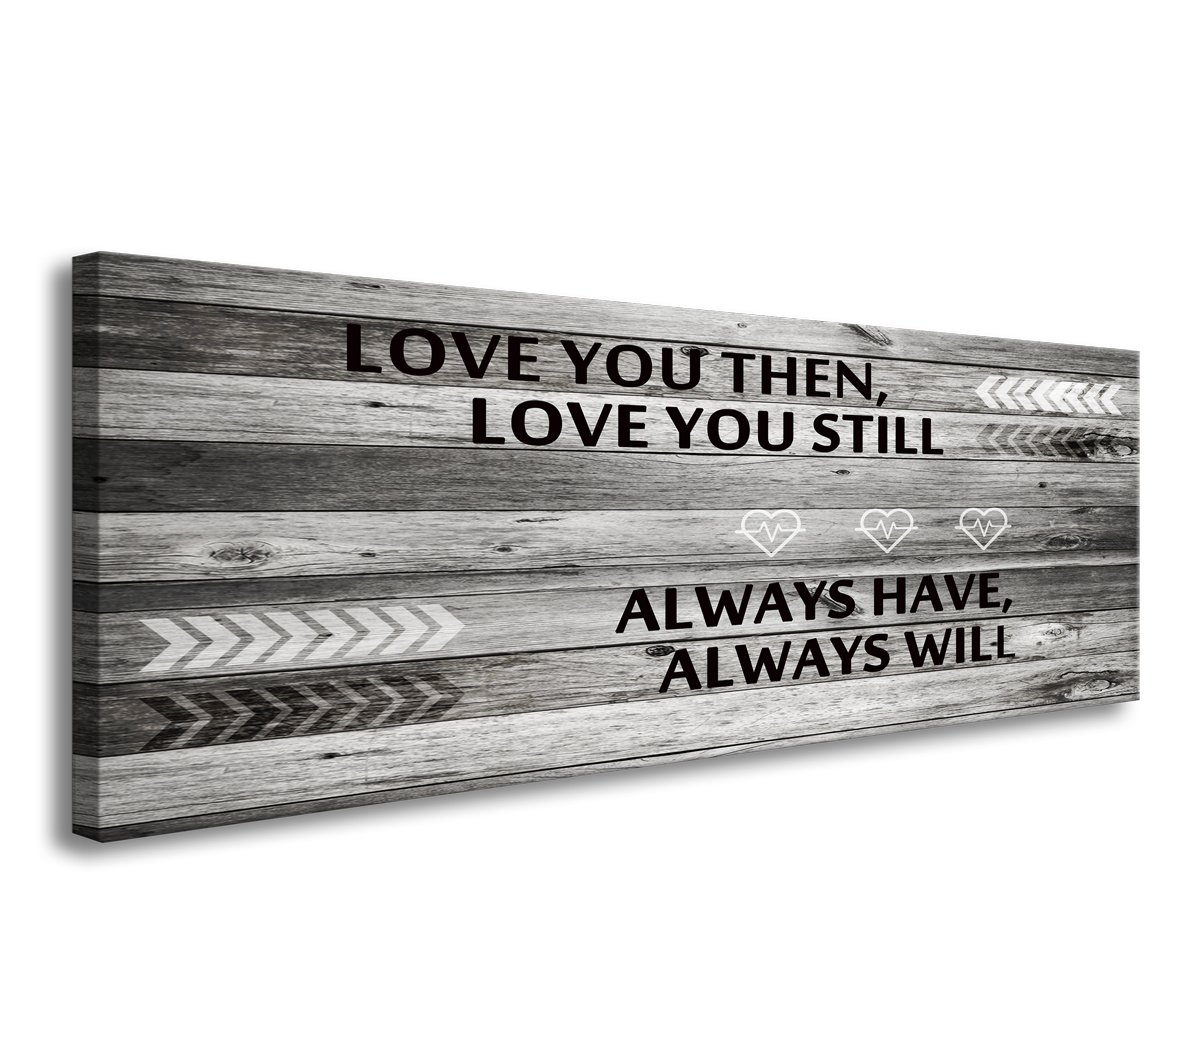 A71841 Canvas Wall Art Love You Still Large Wall Art (Ready to Hang) for Master Bedroom Wall Decor by DZL Art